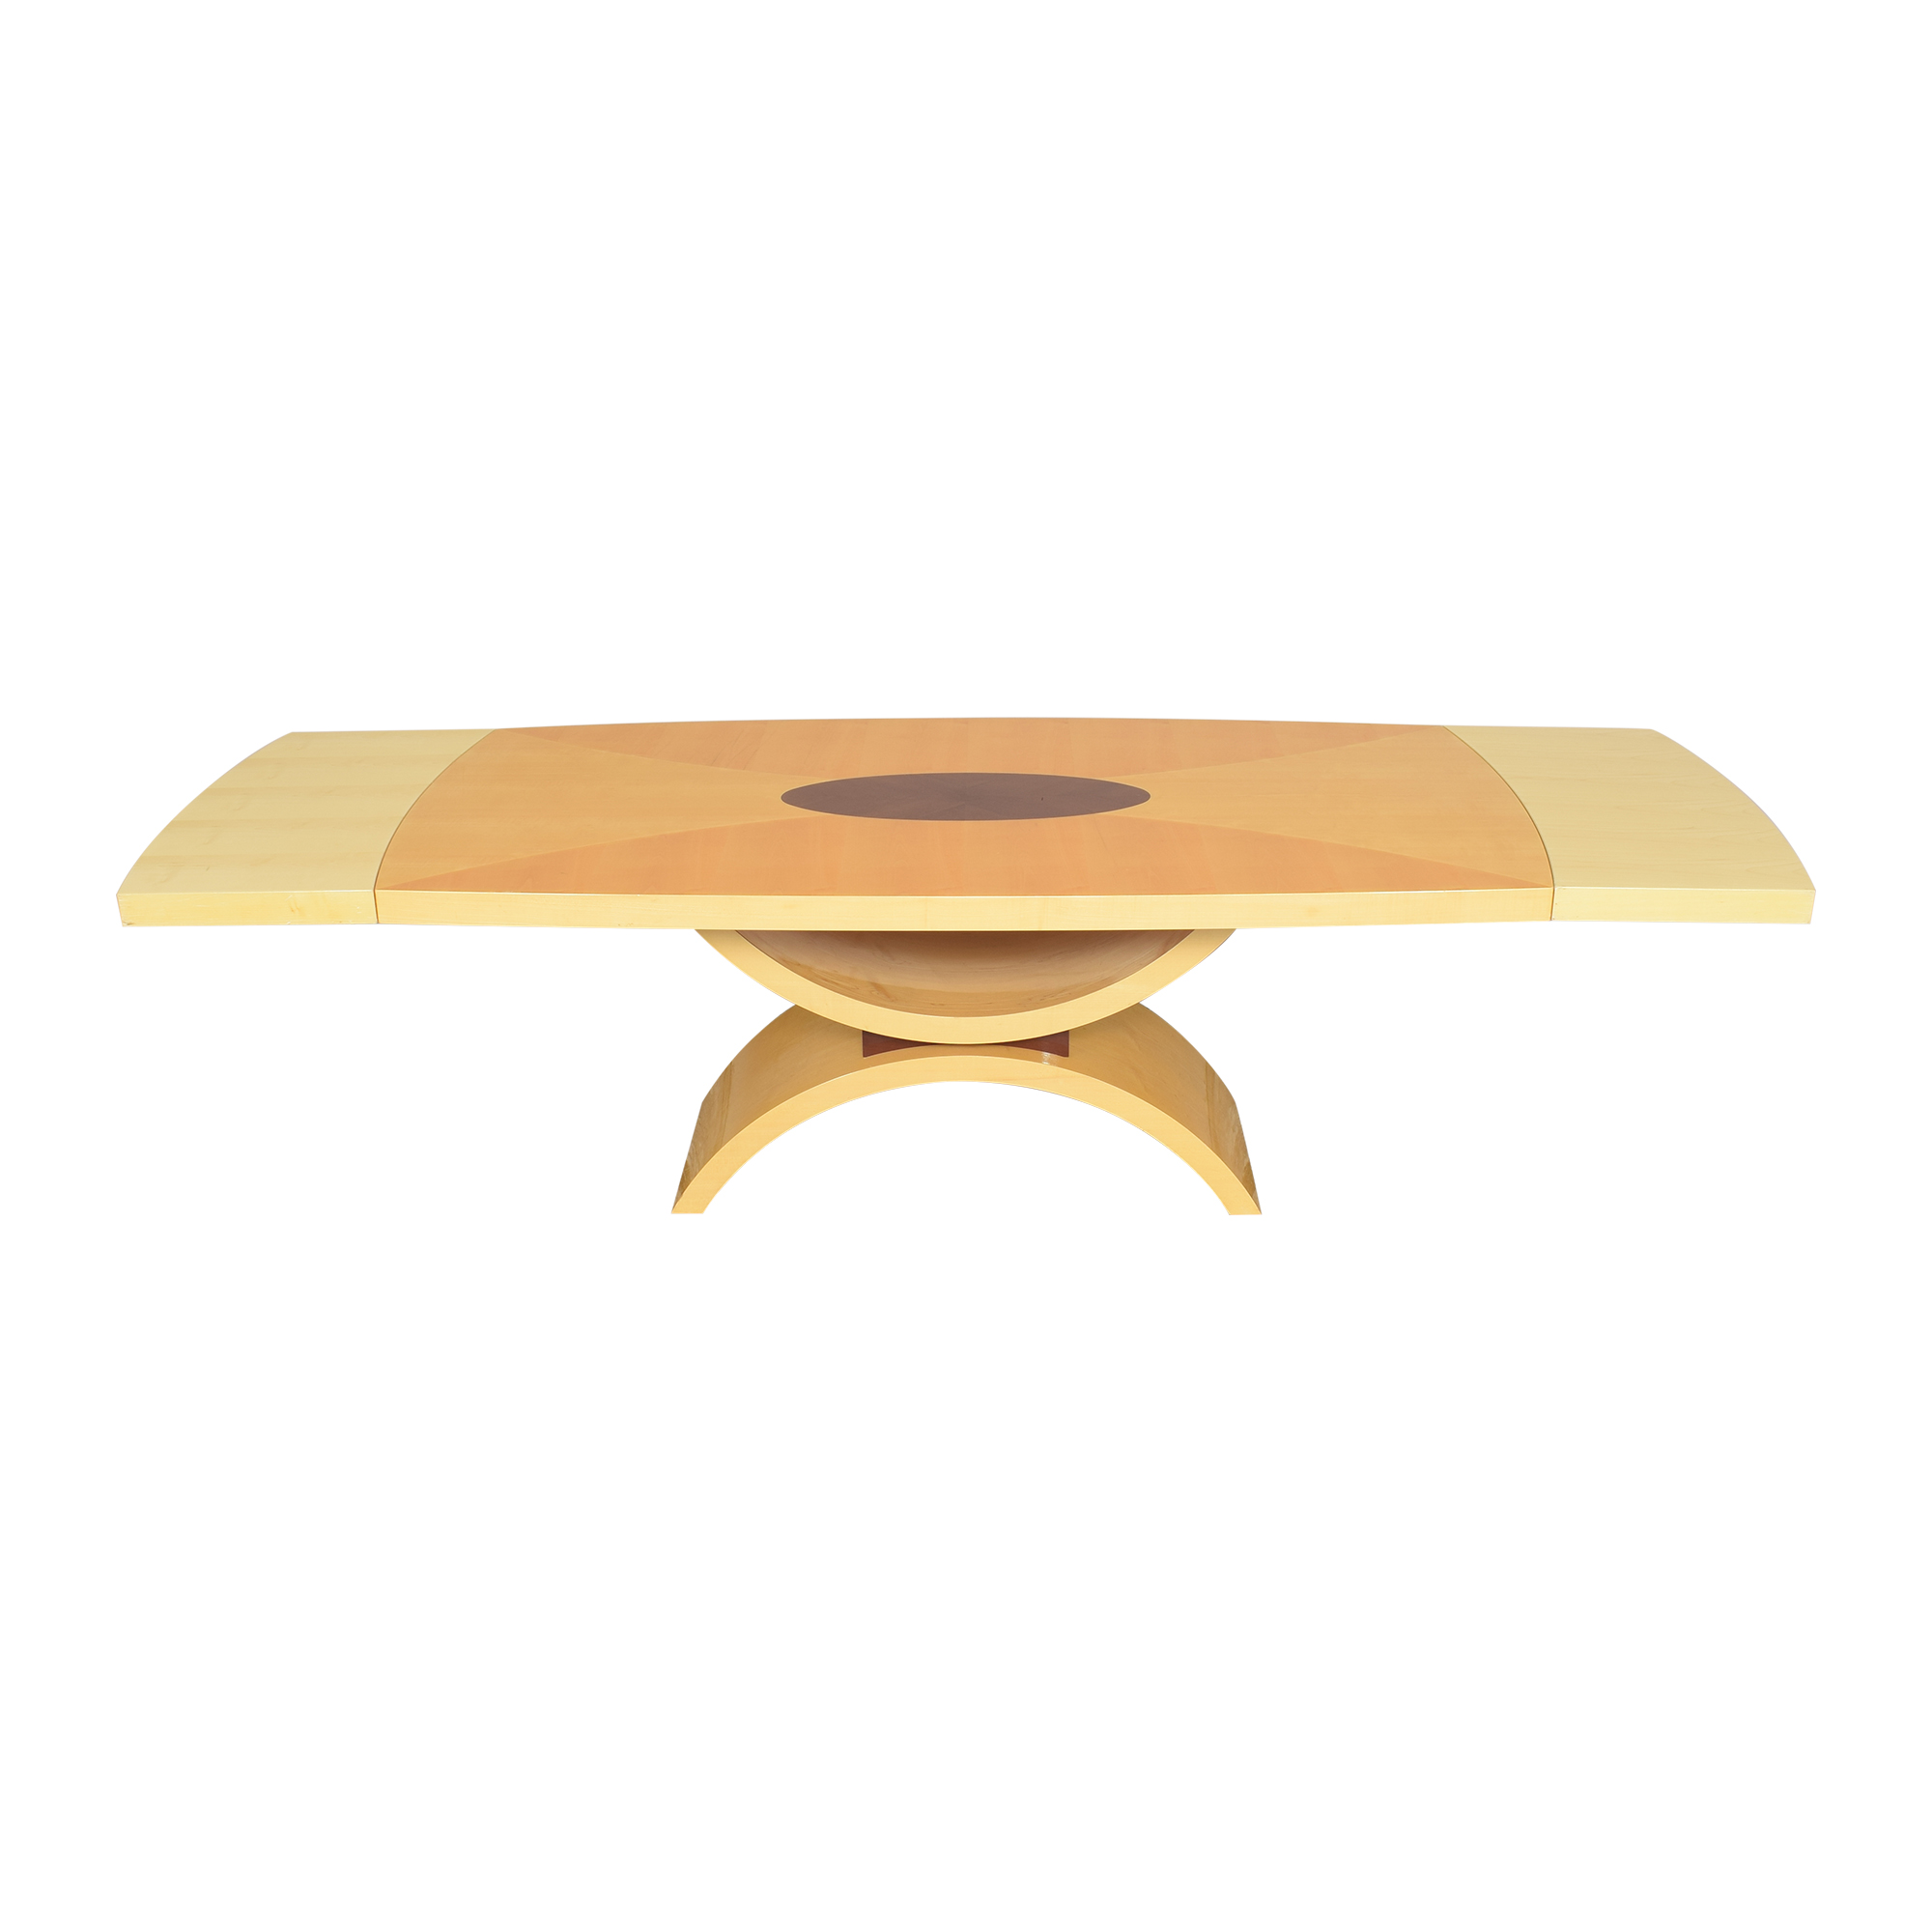 buy Pietro Costantini Extendable Dining Table Pietro Costantini Dinner Tables